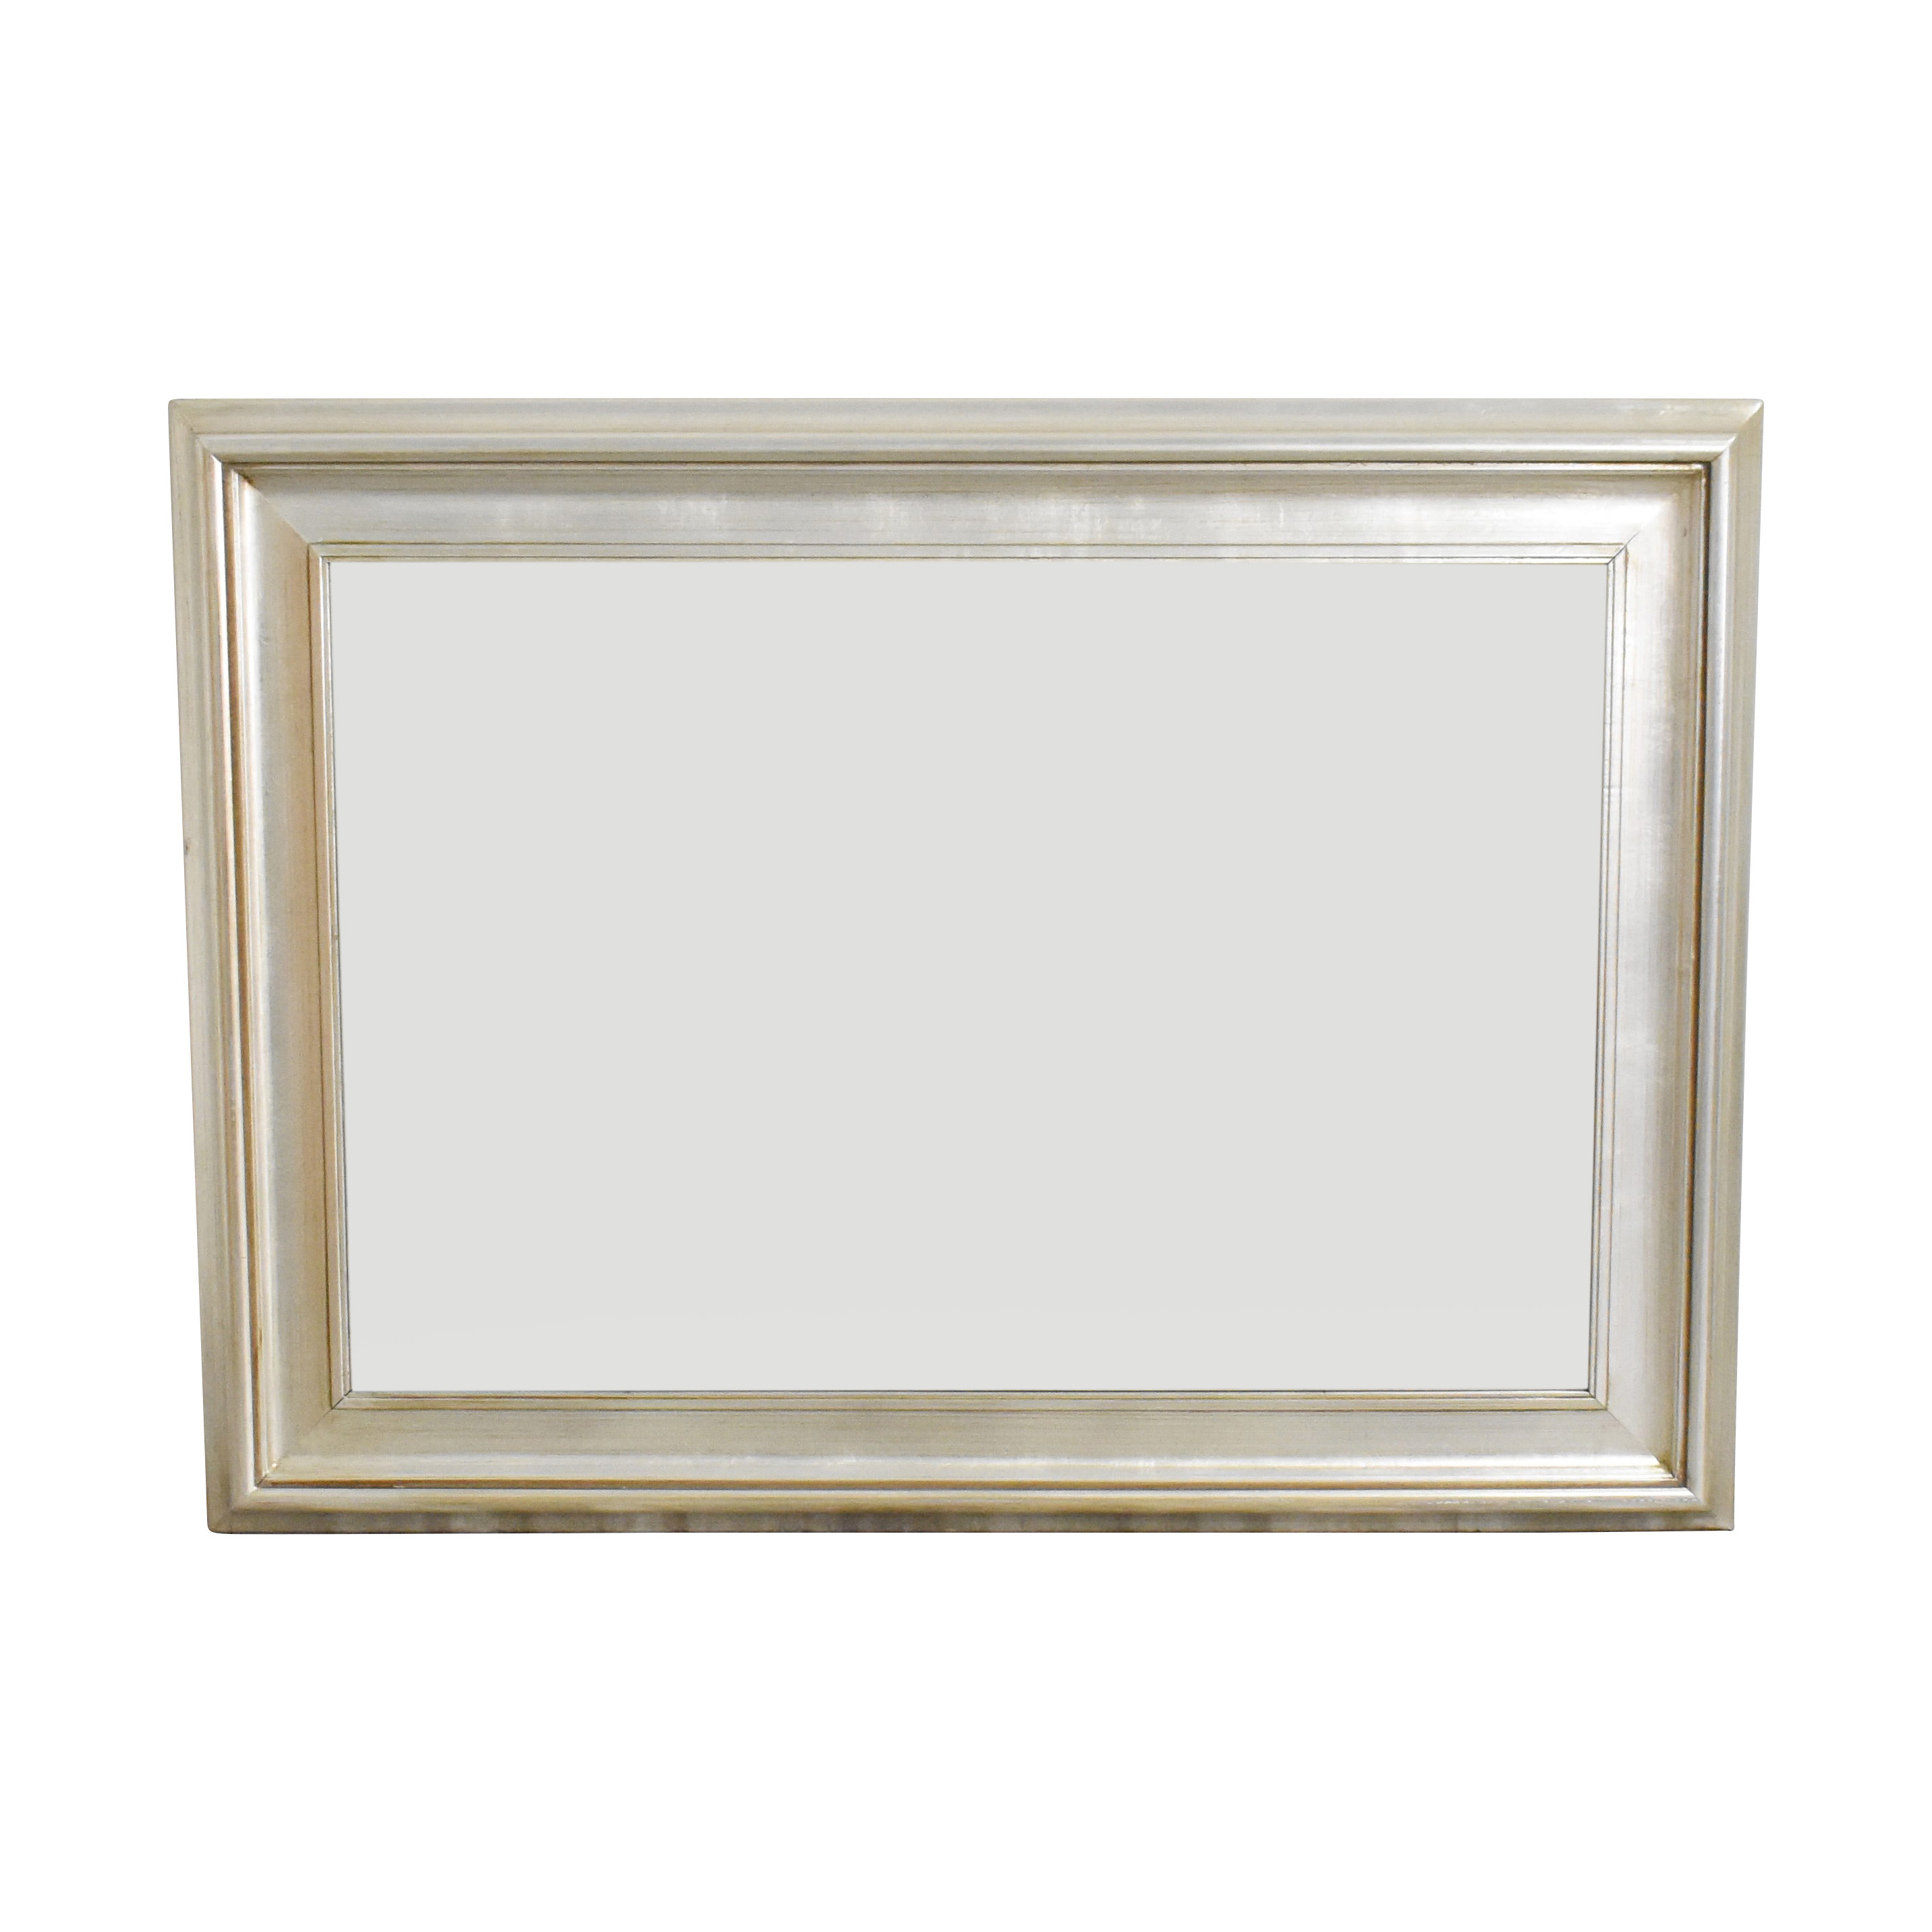 AFD Home Timeless Reflections Beveled Wall Mirror / Mirrors